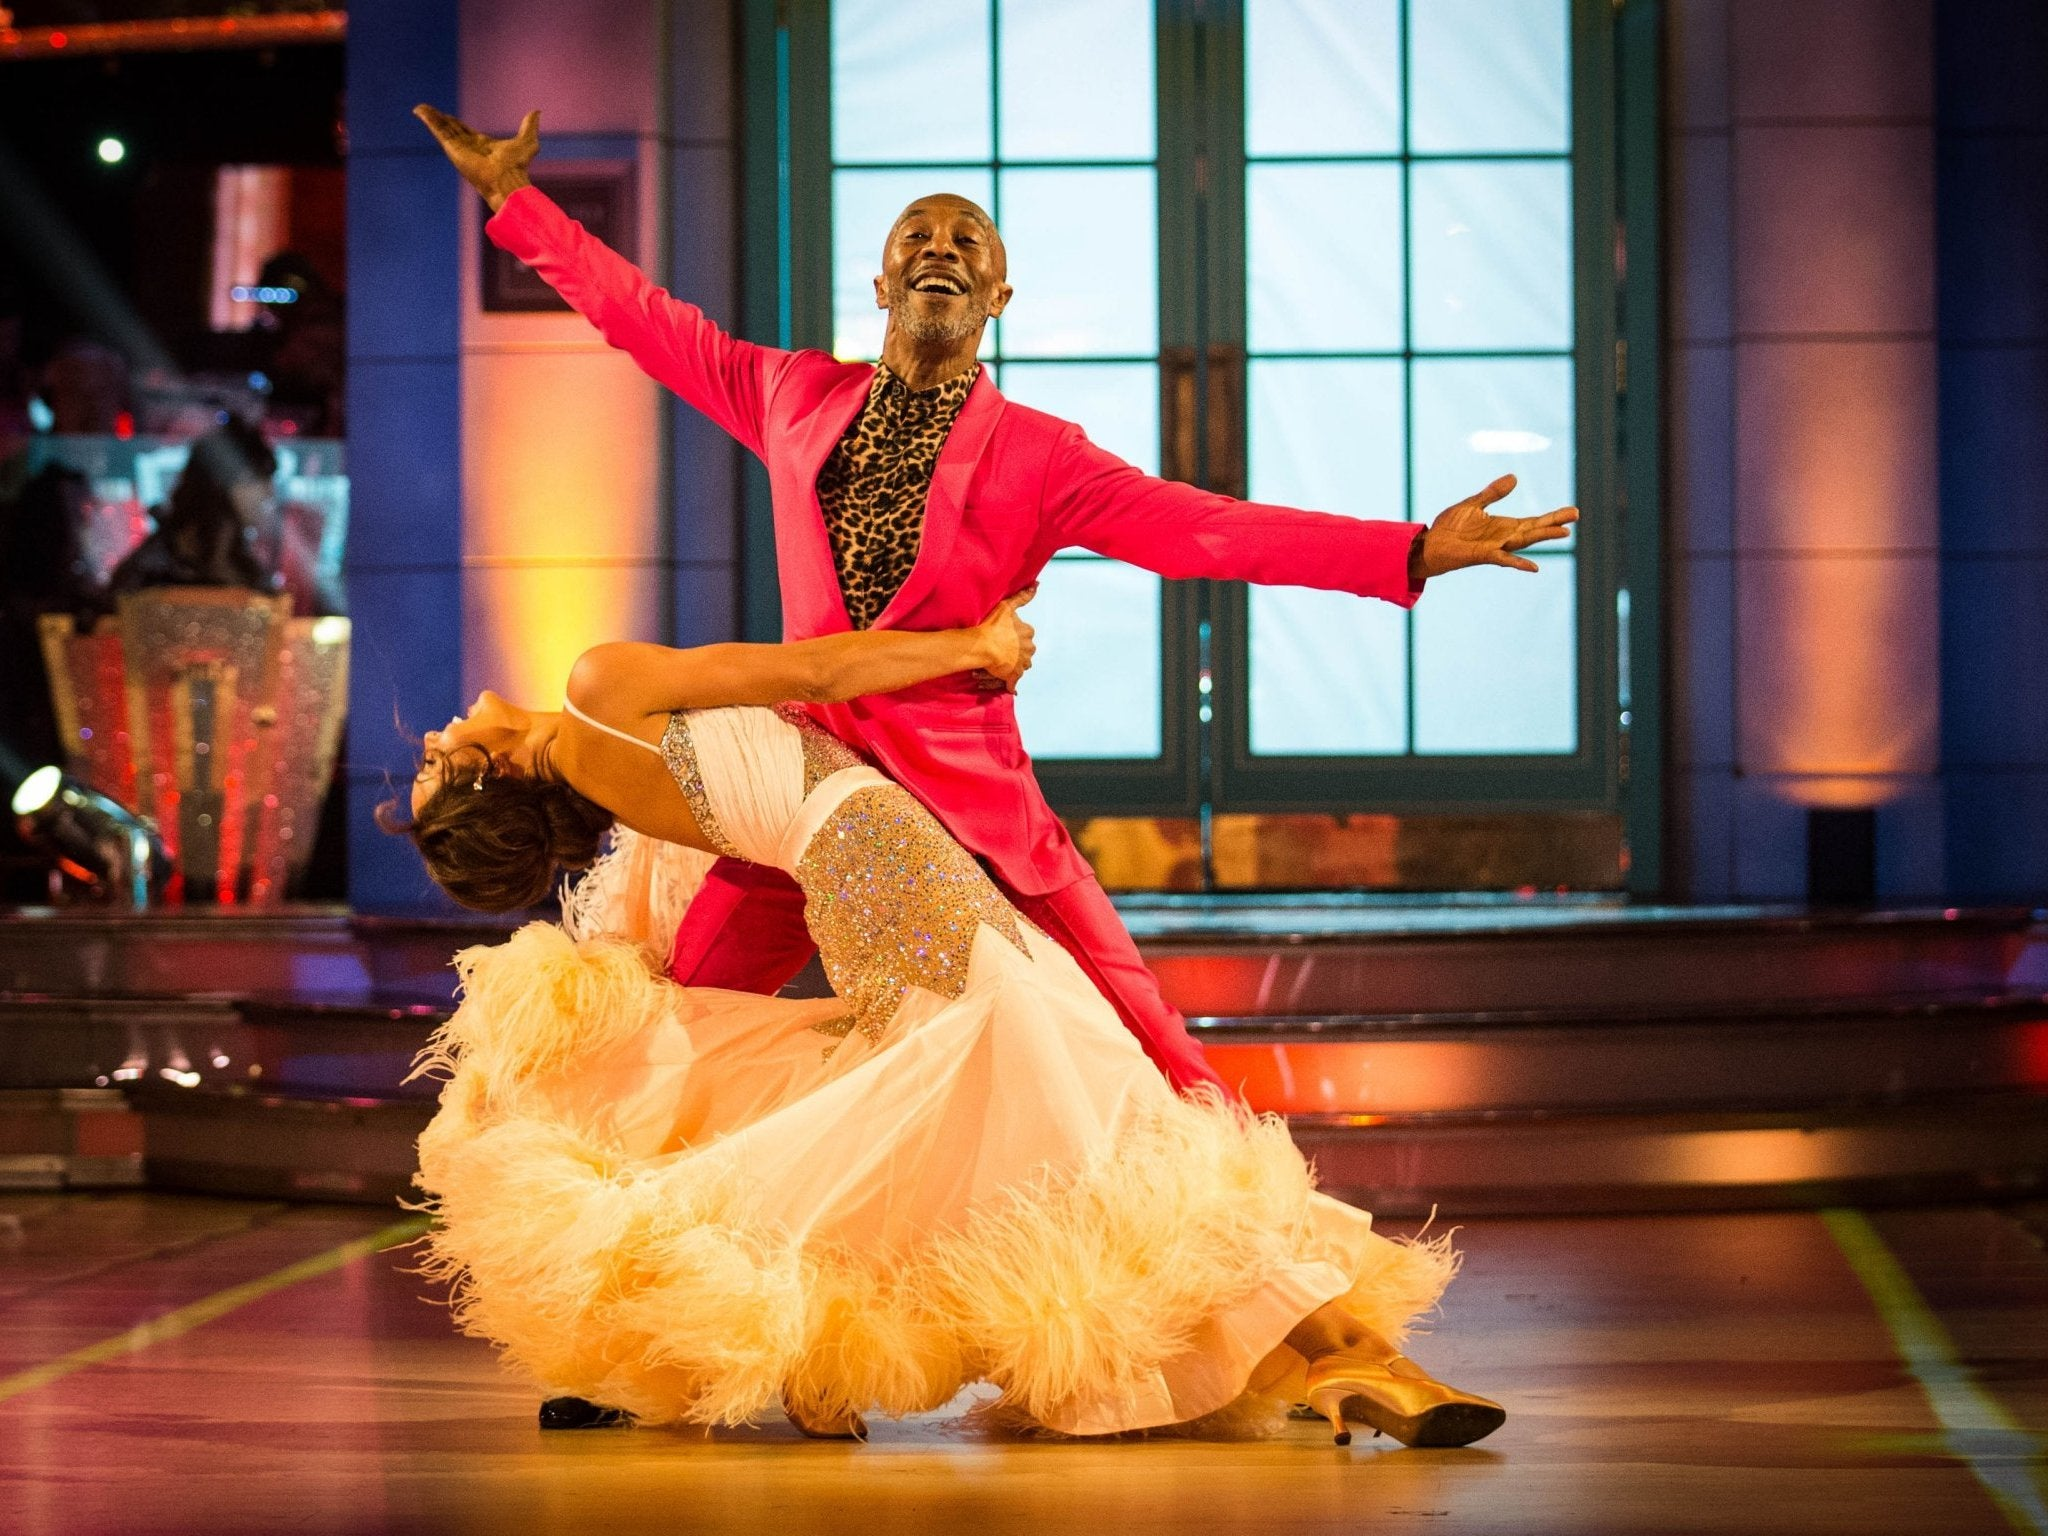 Strictly Approach Dancing overview: Easy to forgive uncover's cringeworthy moments when the dancing is barely exact-making an are trying thumbnail